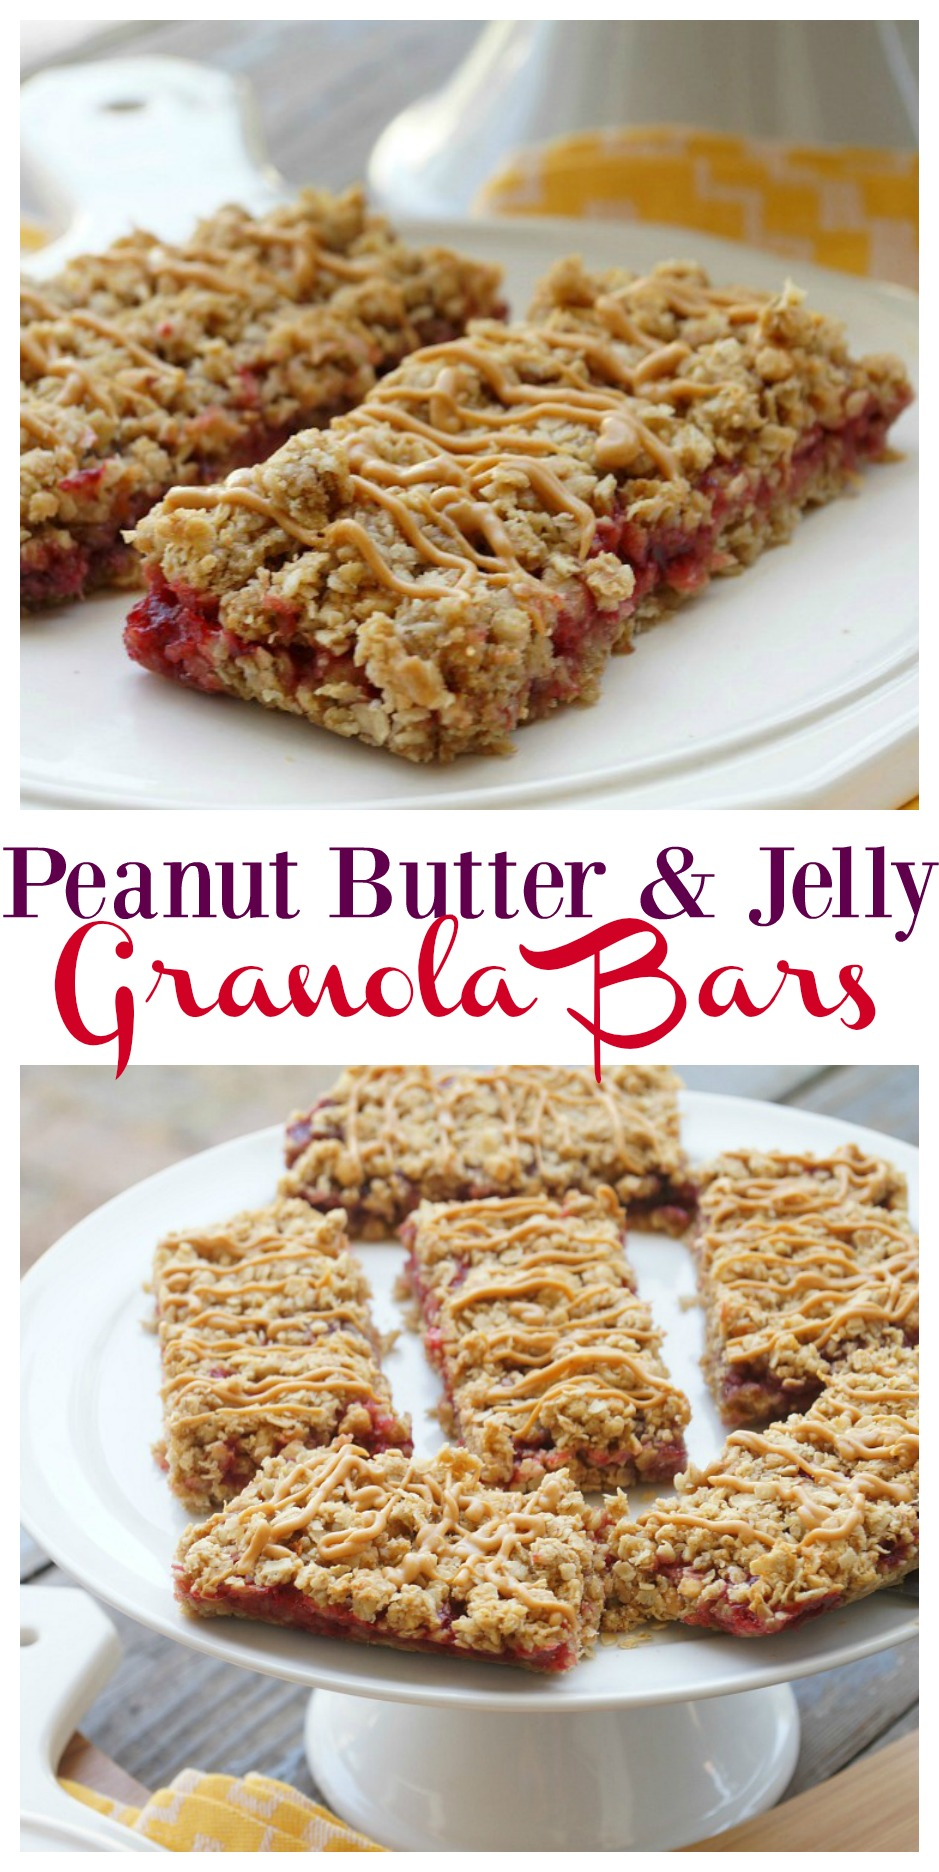 Simple Homemade Peanut Butter and Jelly Granola Bars